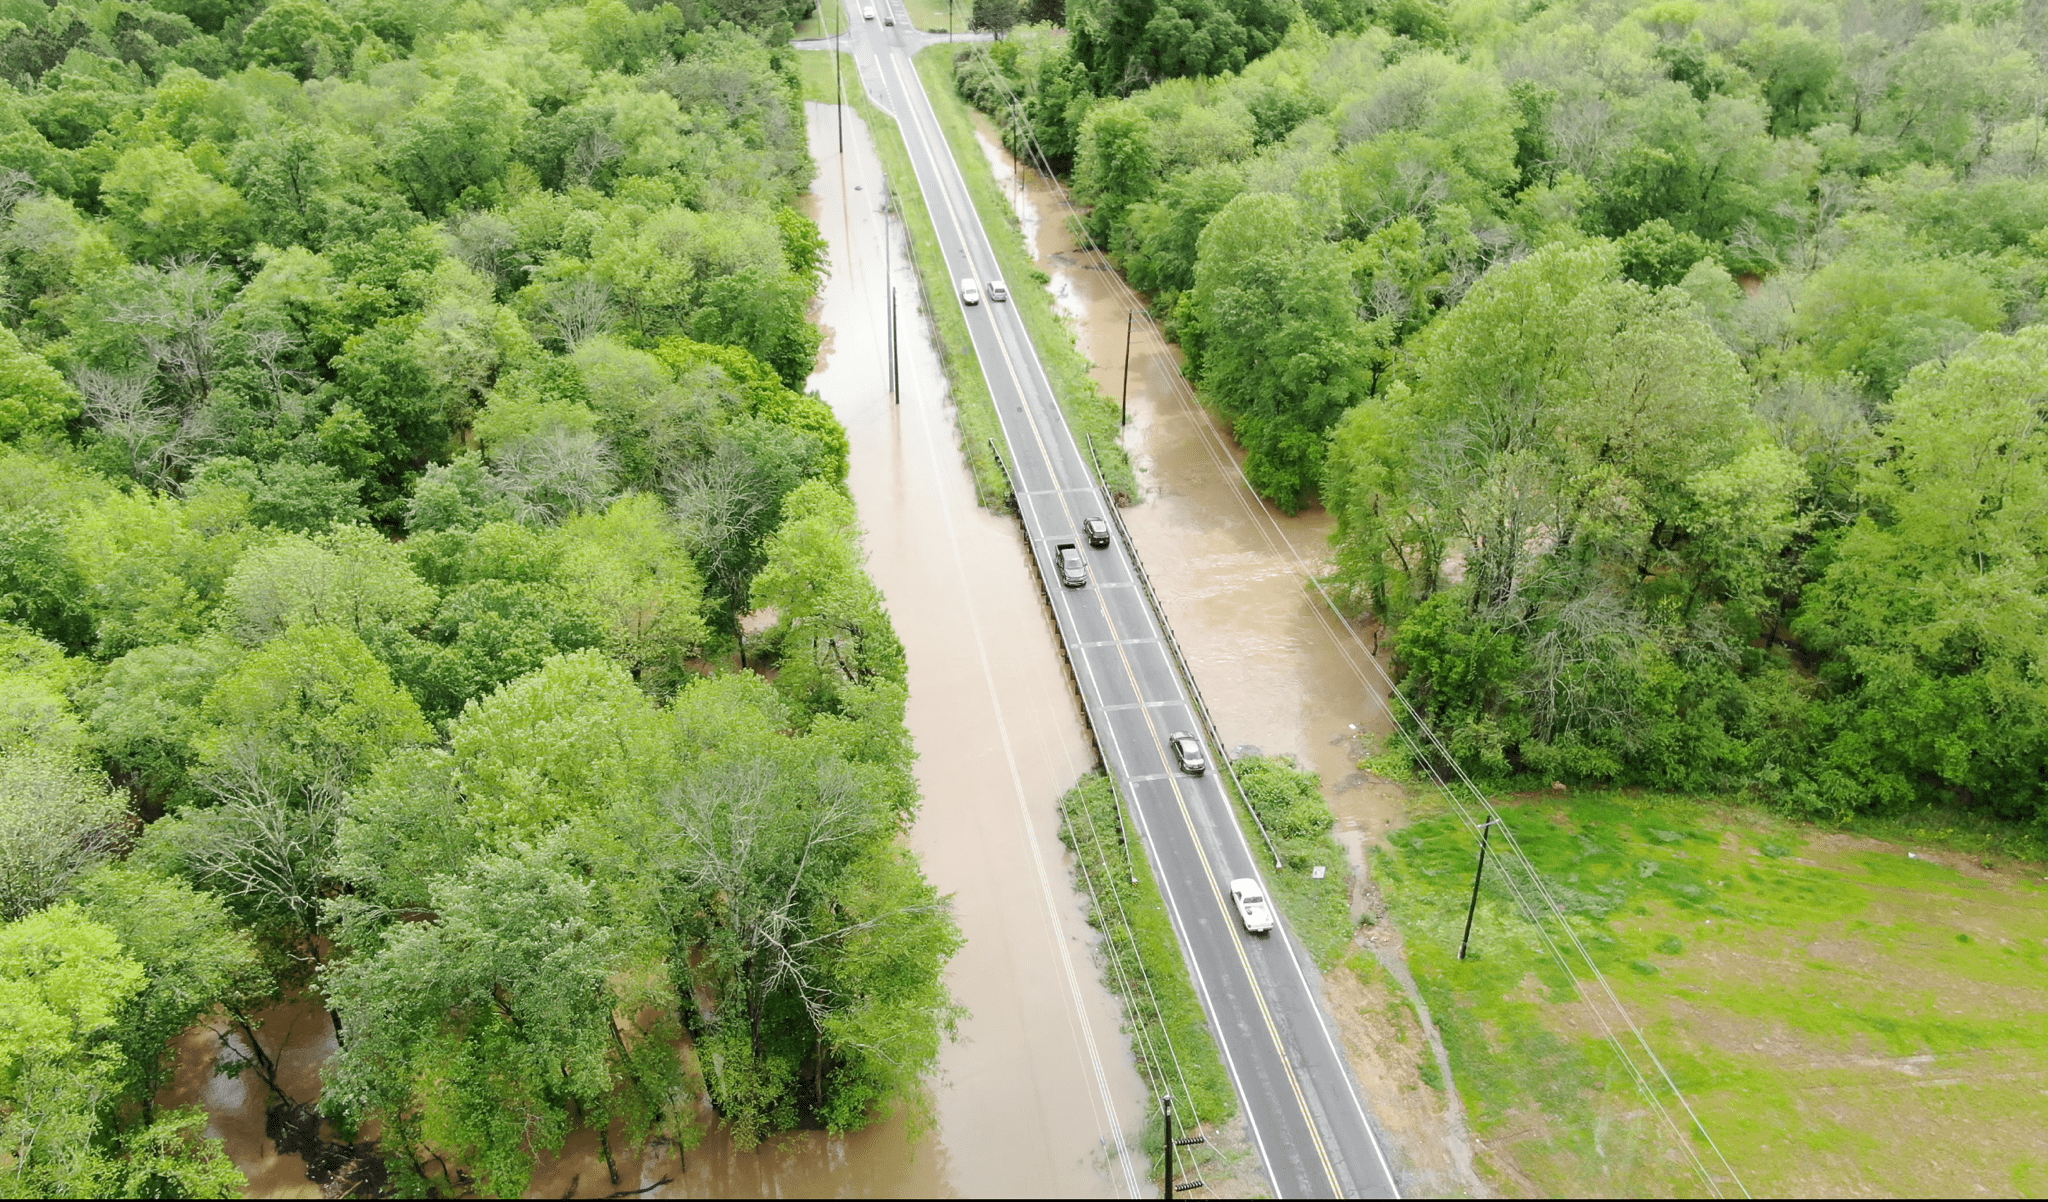 April 19, 2019 Severe Weather and Heavy Rainfall